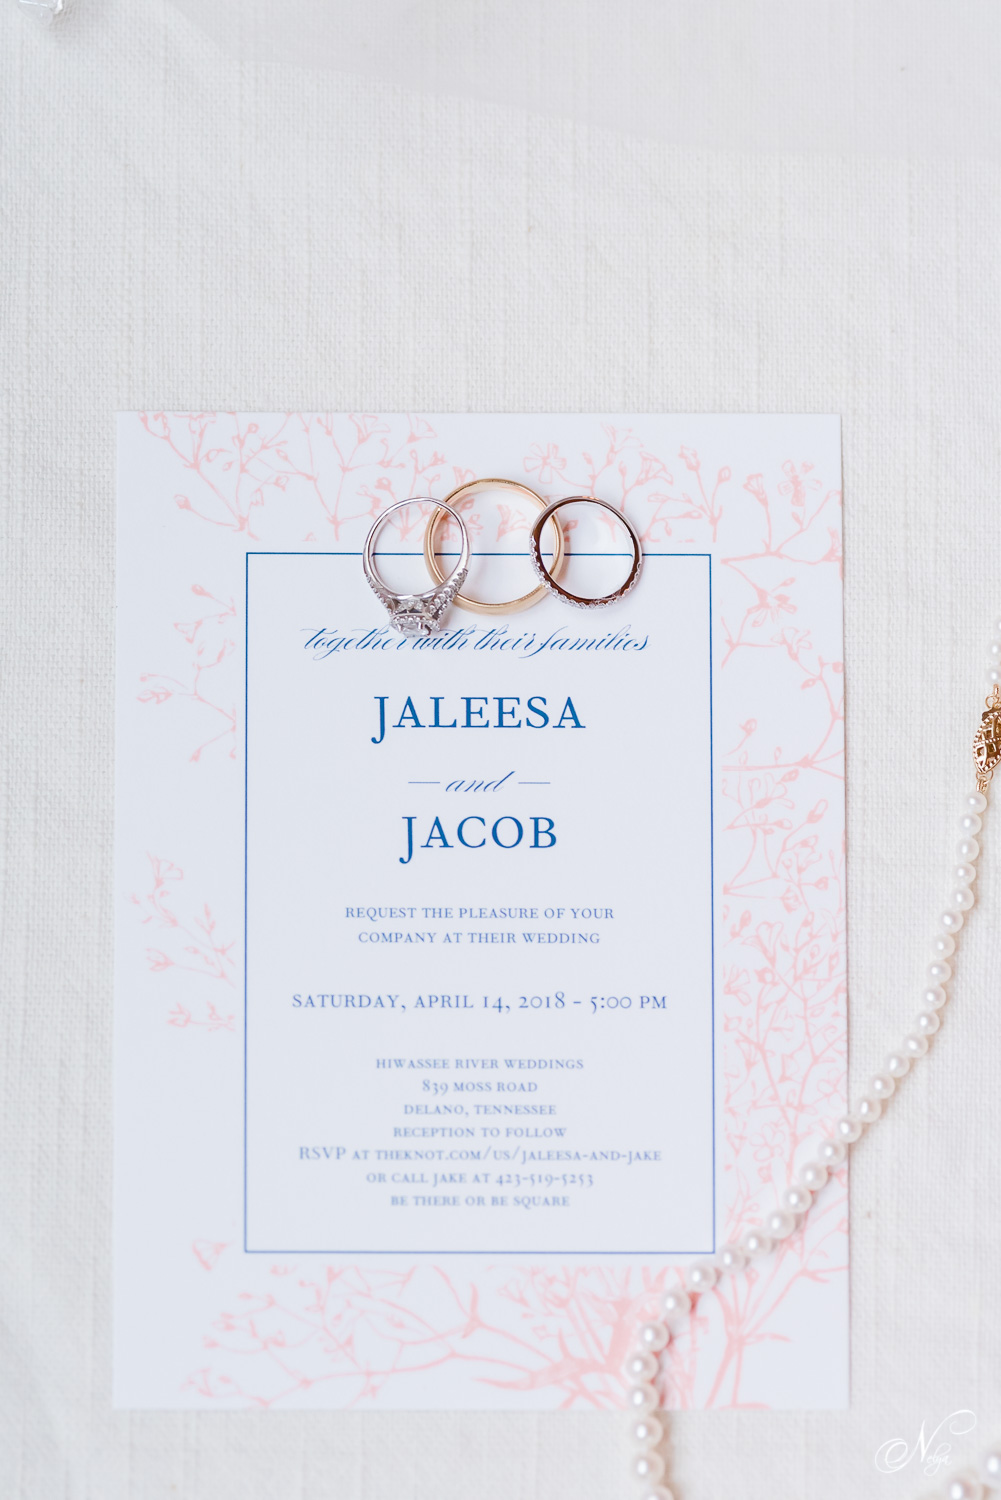 wedding invitation in blush and navy and wedding rings on white styling board.